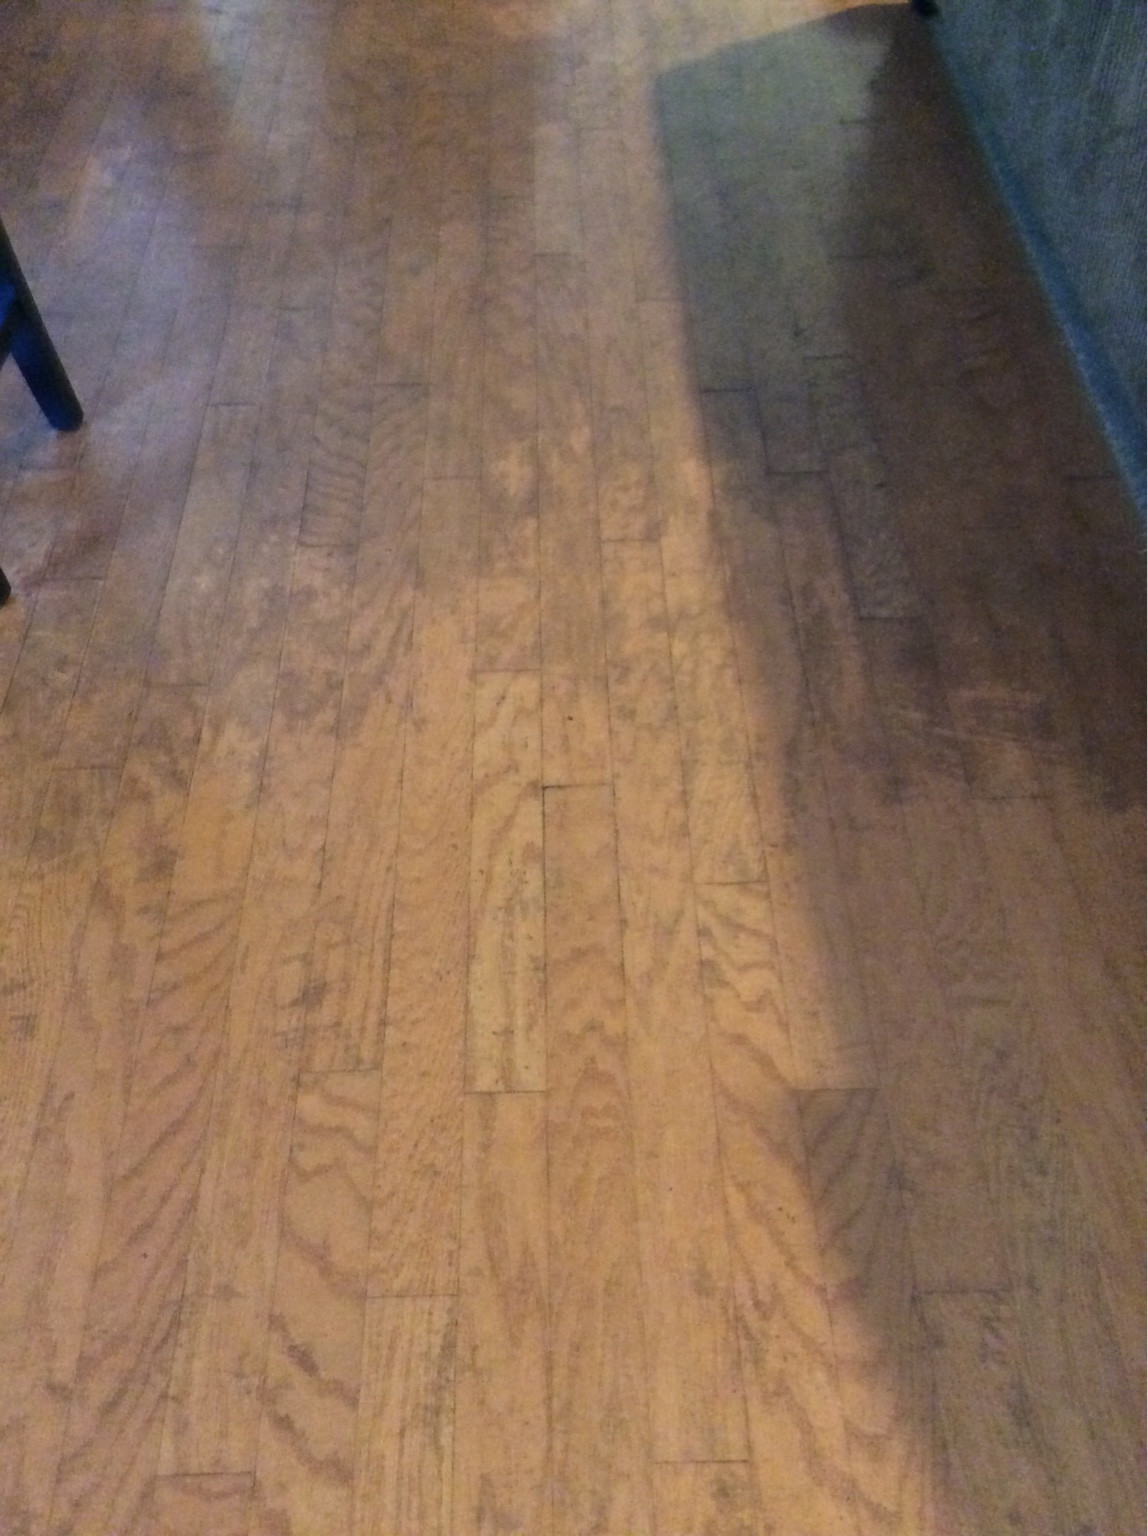 Hardwood Floor Wax Finish Of Hardwood Floor Cleaning Help Truckmount forums 1 Carpet In How Would You Guys Clean This Wood Floors